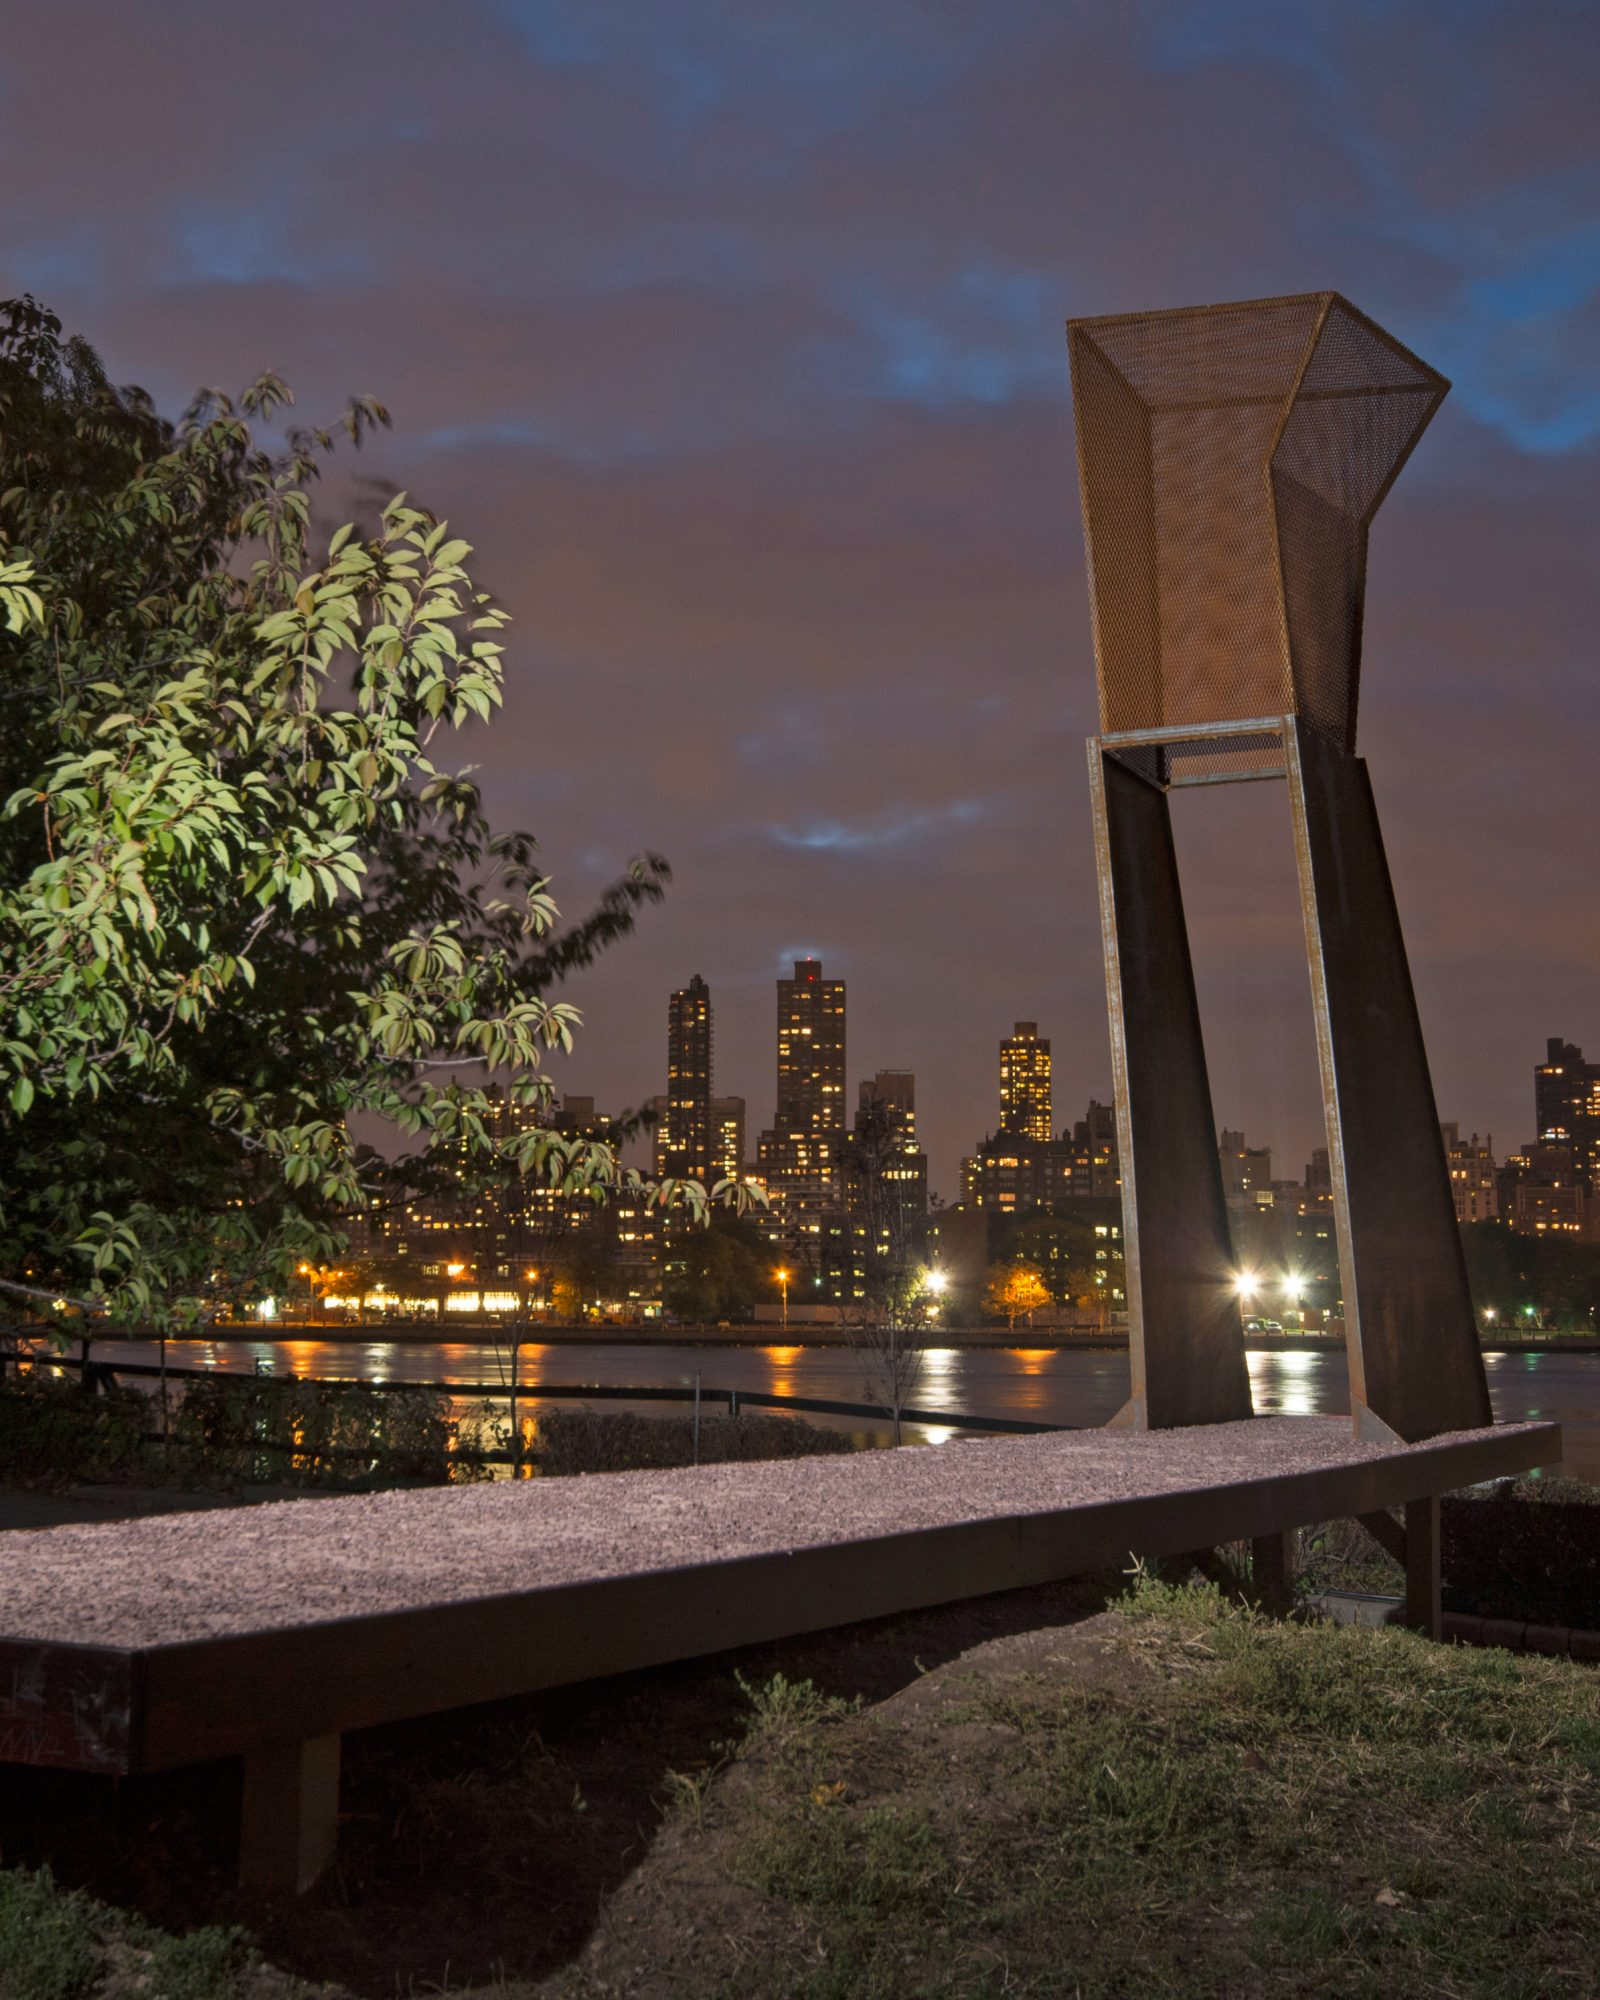 nyc-proposal-spot-socrates-sculpture-park-queens-1114.jpg